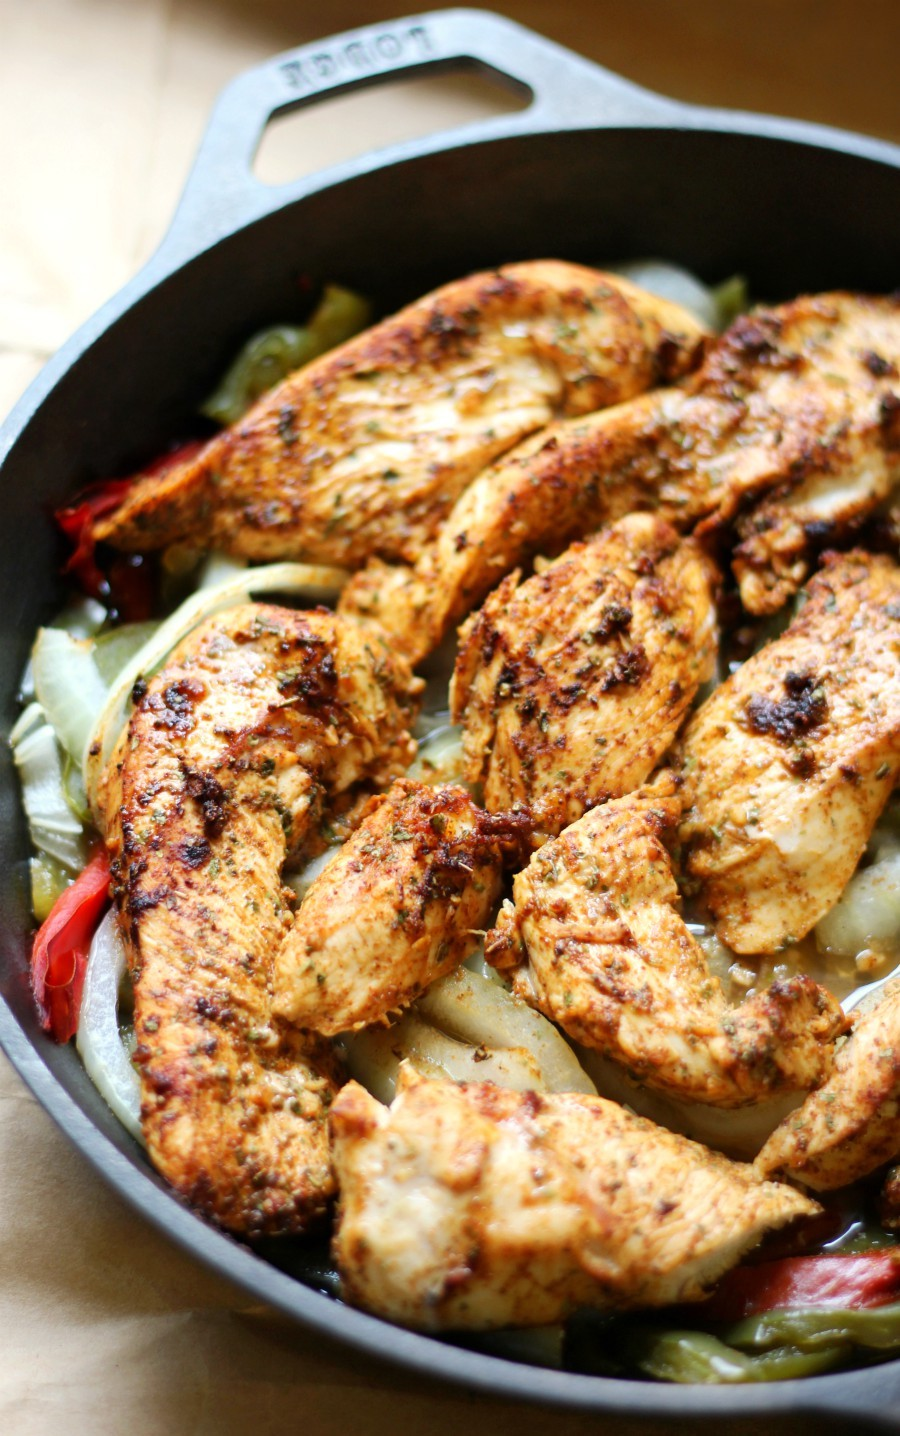 Easy Gluten-Free Skillet Chicken Fajitas (Allergy-Free, Paleo) | Strength and Sunshine @RebeccaGF666 Delicious and easy Gluten-Free Skillet Chicken Fajitas, healthy and baked in the oven. Just sliced spiced rubbed chicken, bell peppers, and onions! An allergy-free and paleo Tex-Mex recipe you can make for dinner or prep ahead of time for quick lunches and meals throughout the week!